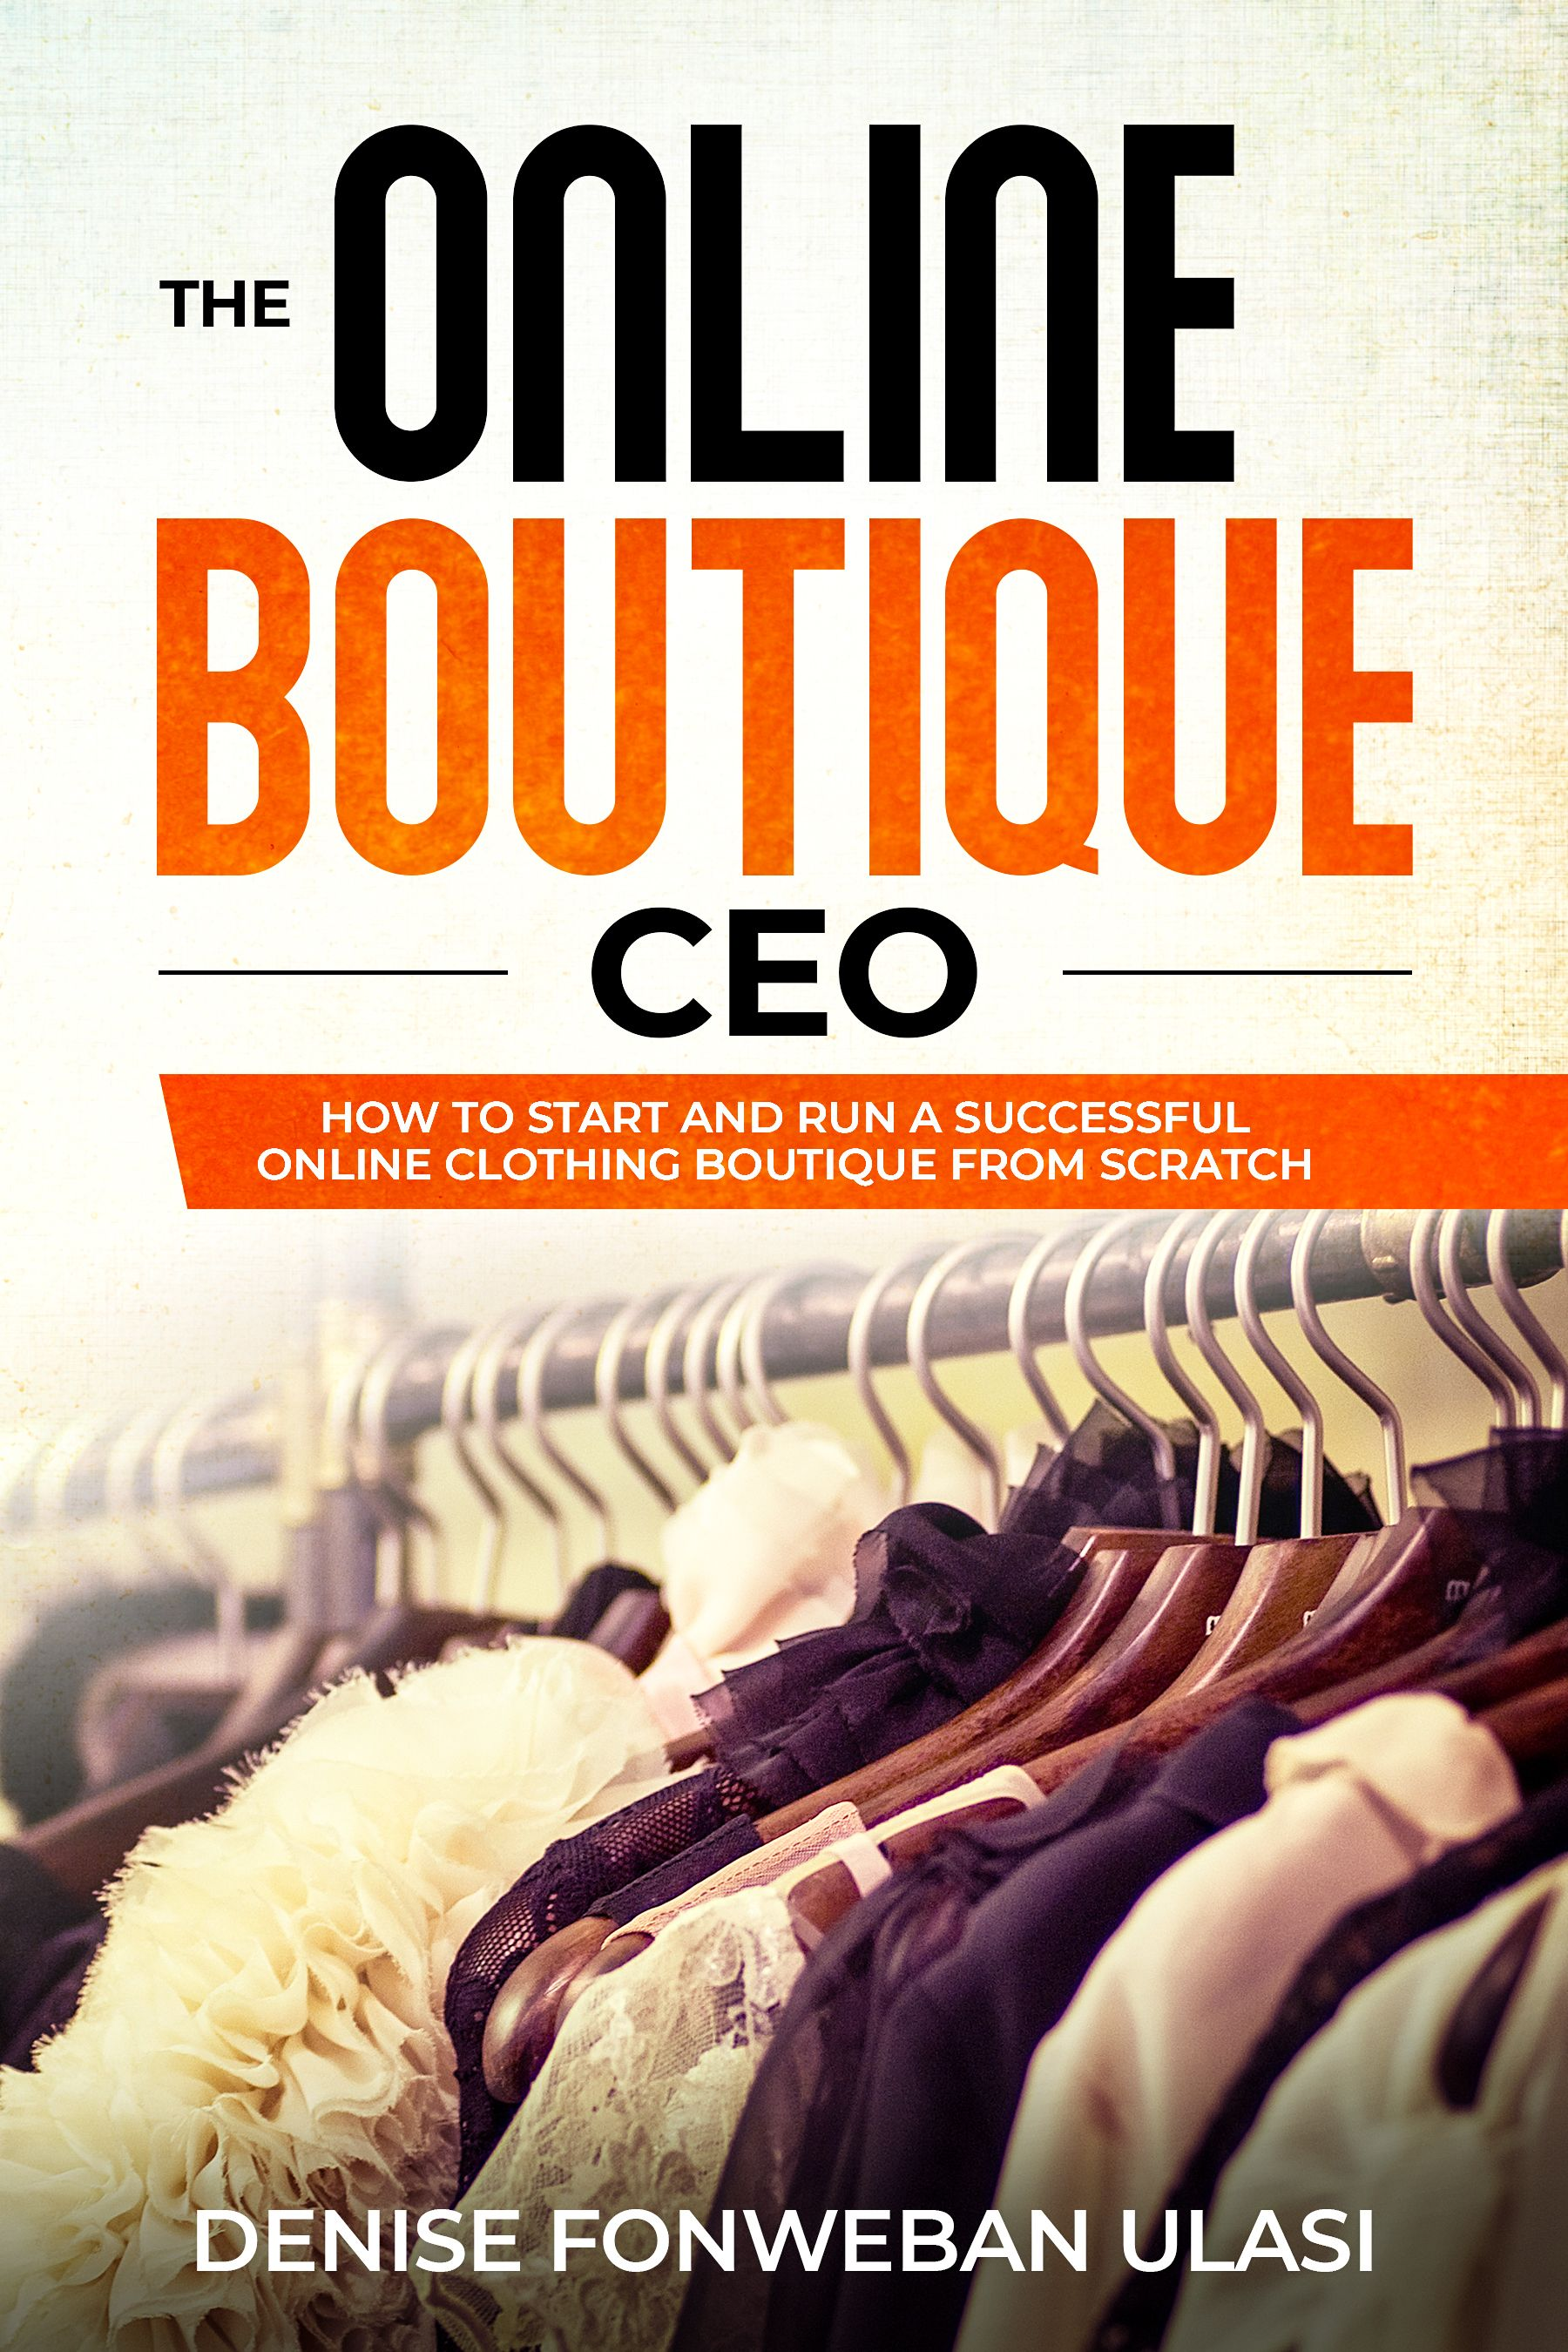 How To Start A Clothing Line Starting A Clothing Business Starting An Online Boutique Online Clothing Boutiques